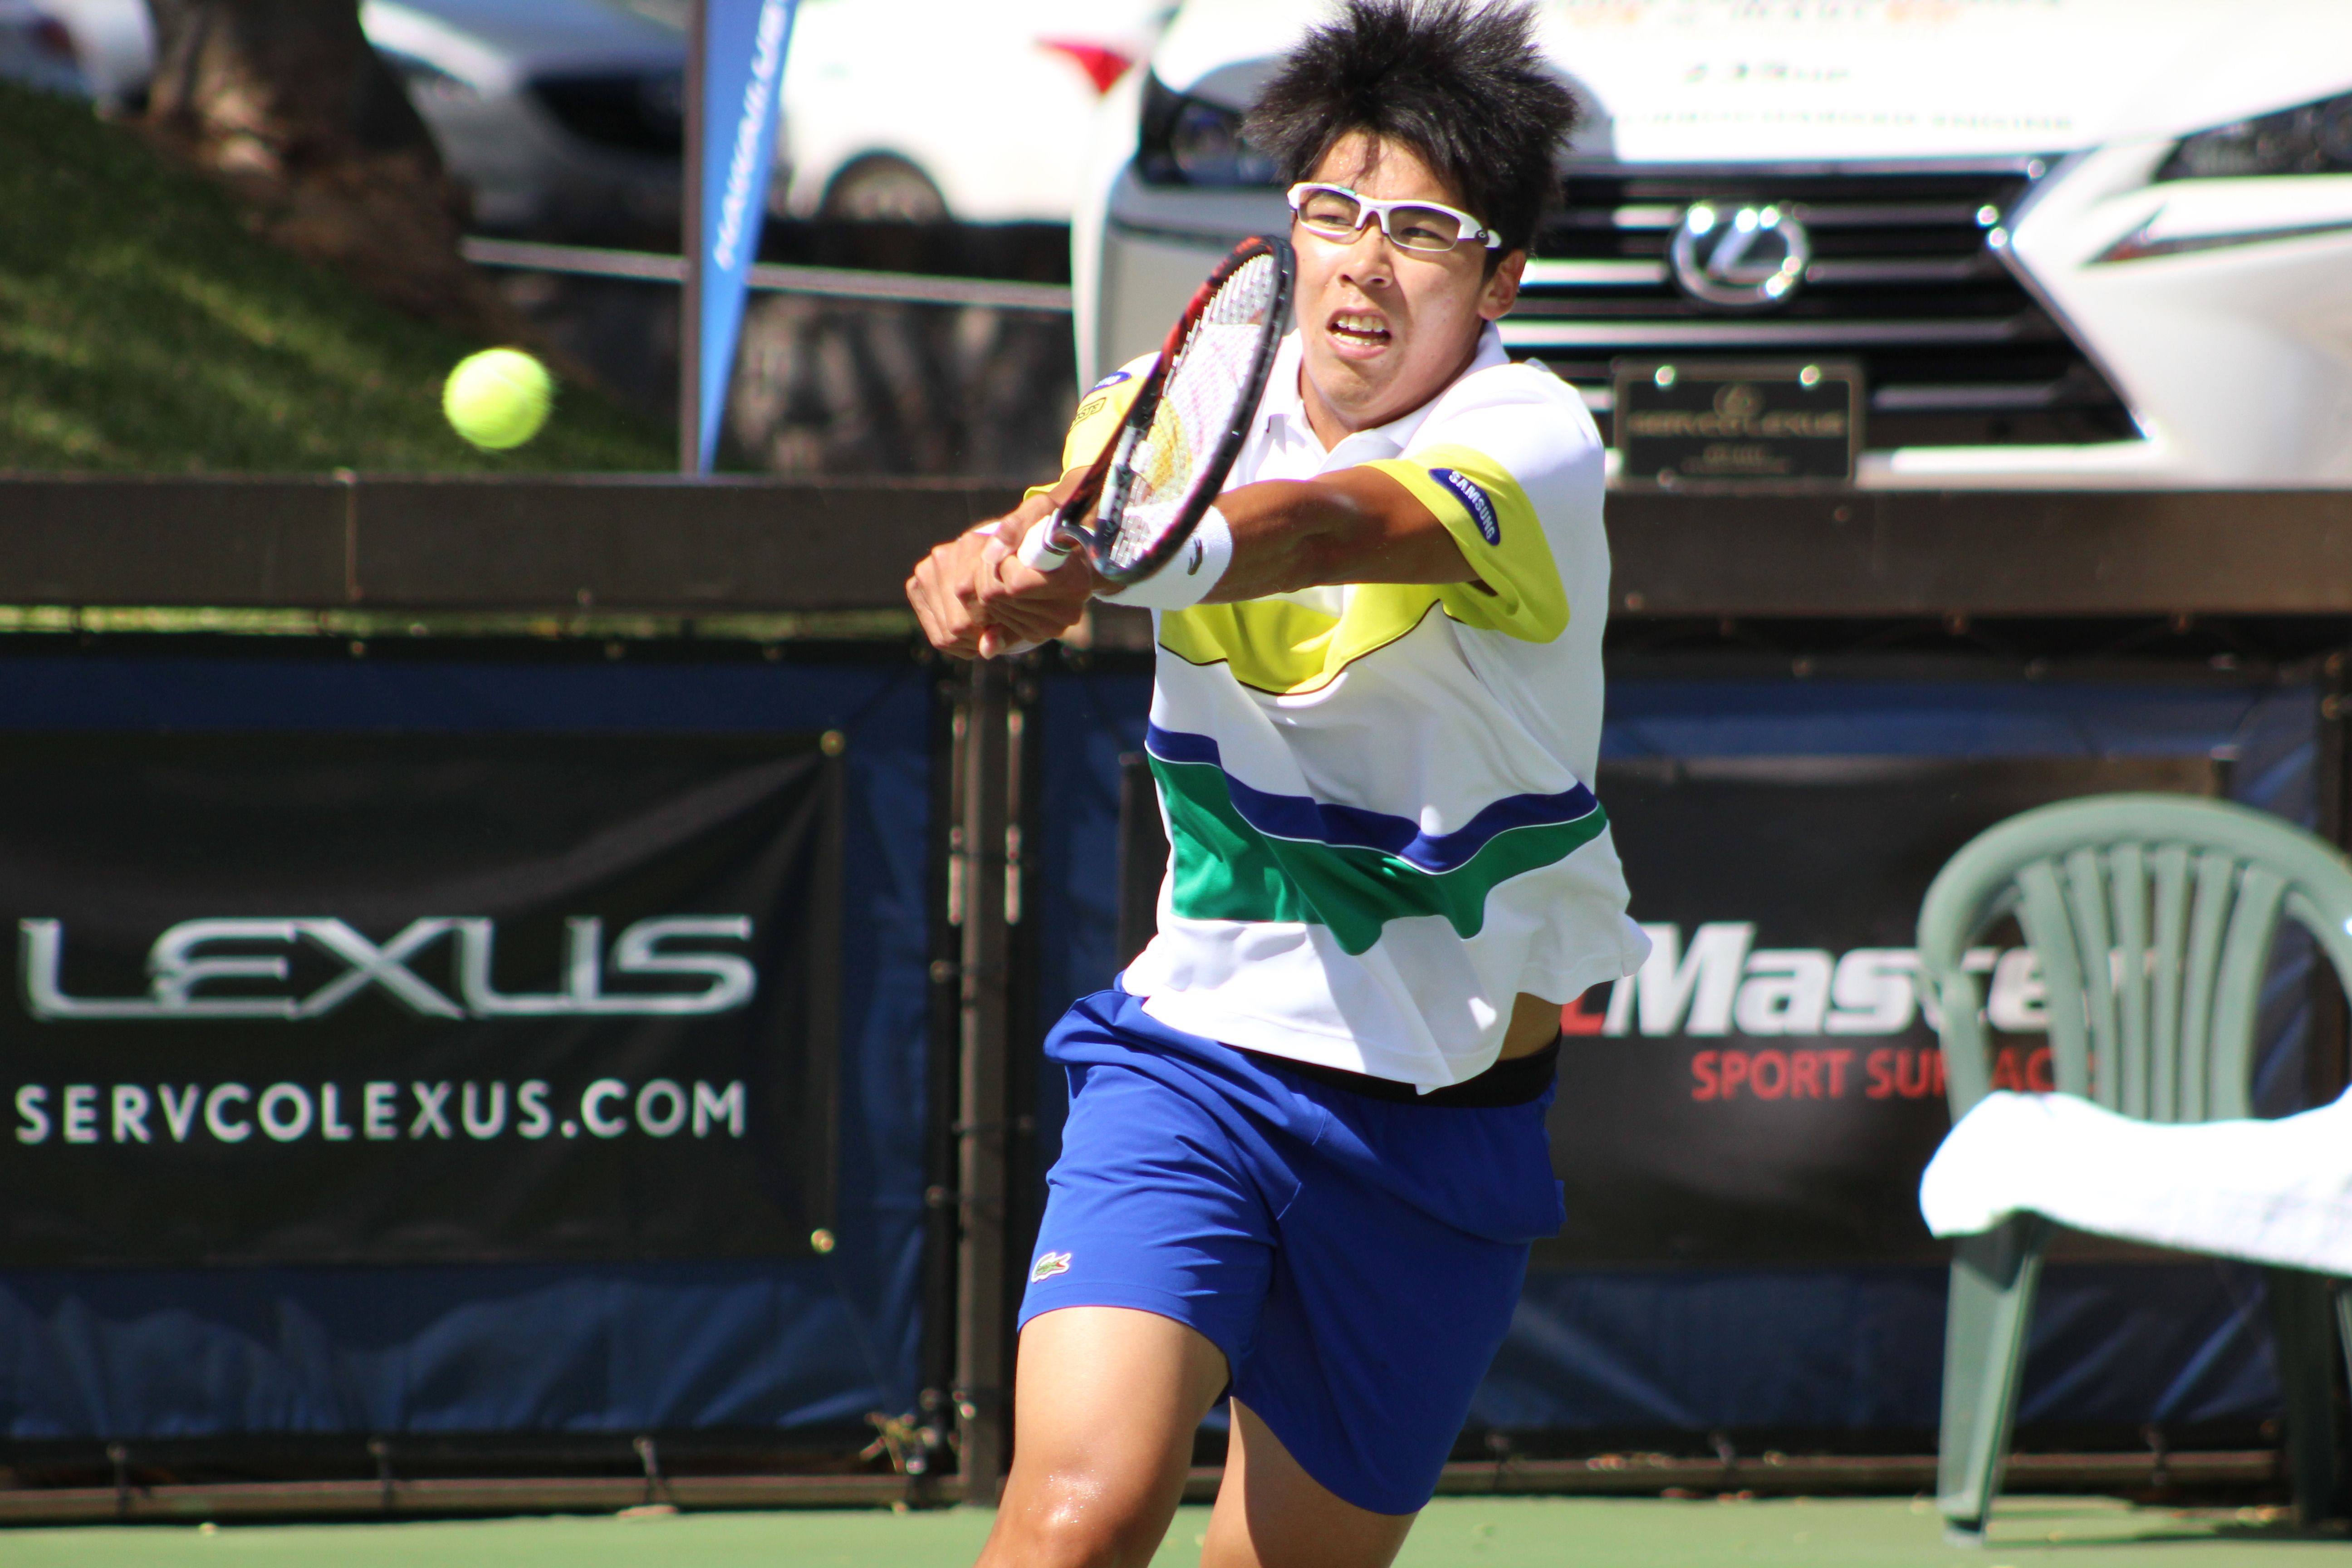 maui now day 4 sportmaster tennis championships of maui day 5 highlights sportmaster tennis championships of maui